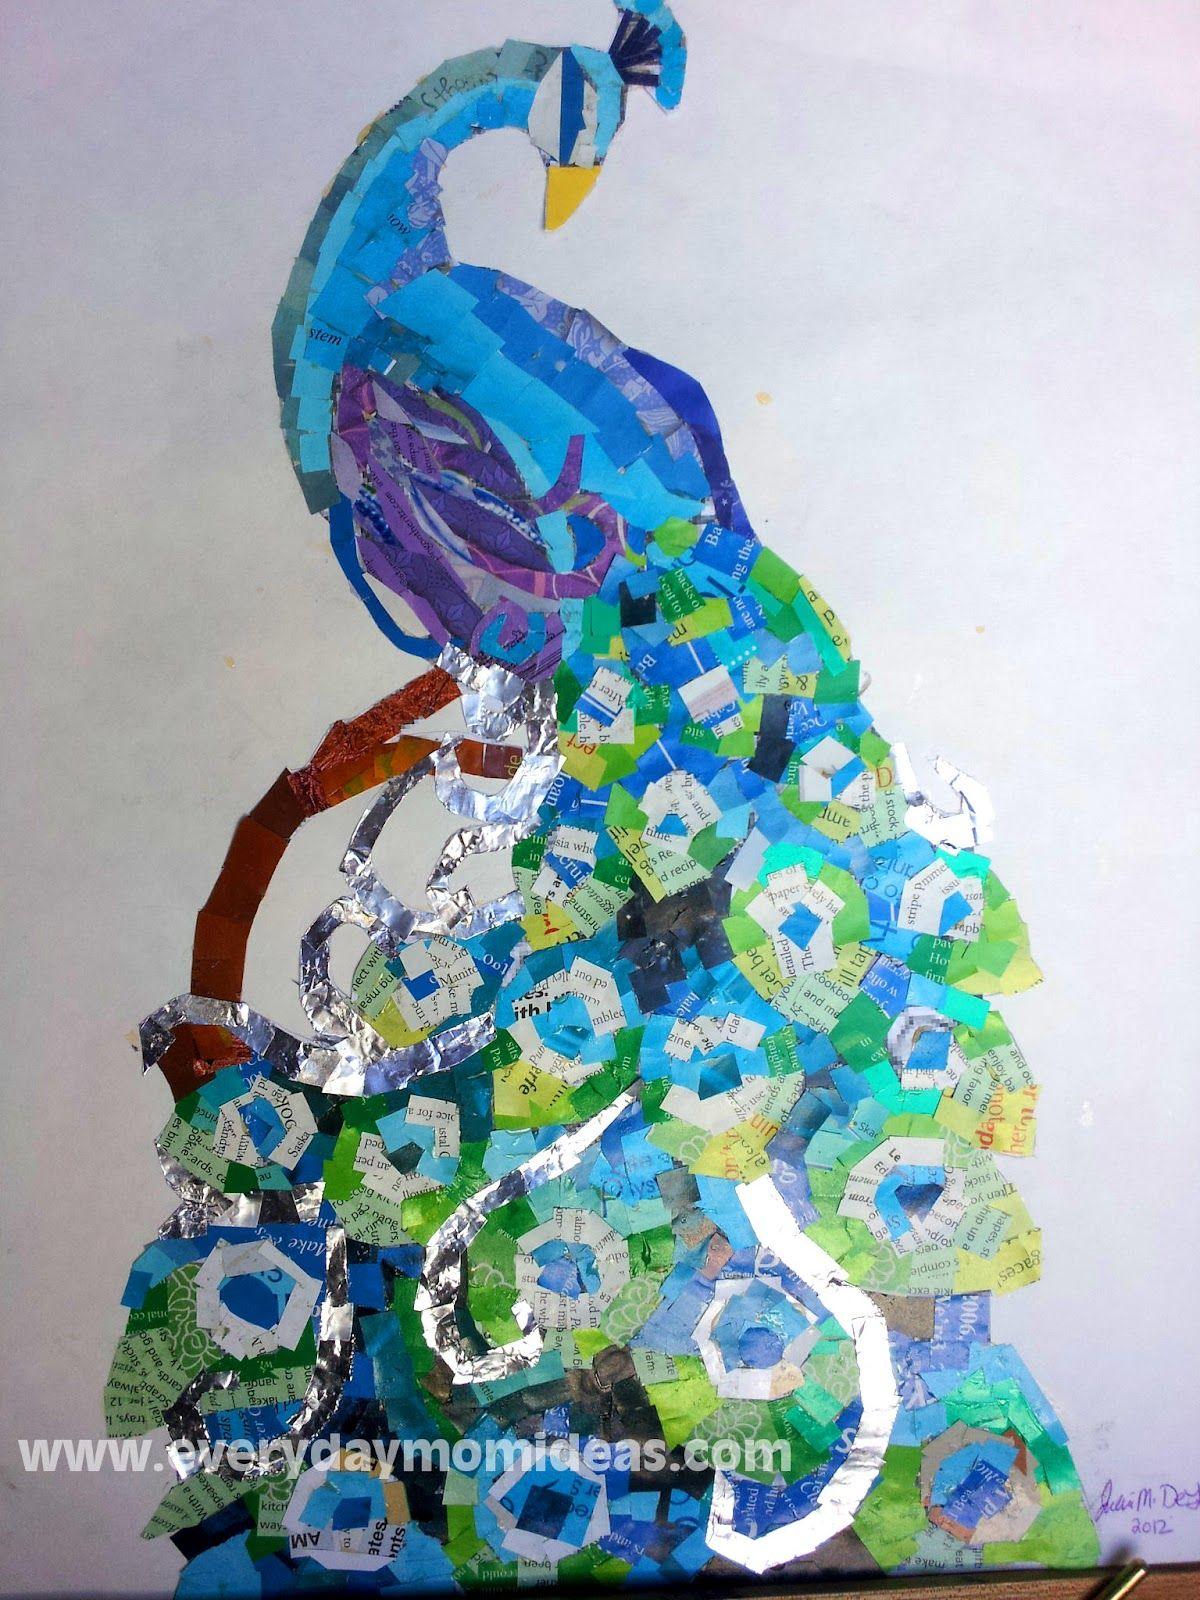 Everyday mom ideas from trash to treasure mosaic for Art from waste ideas